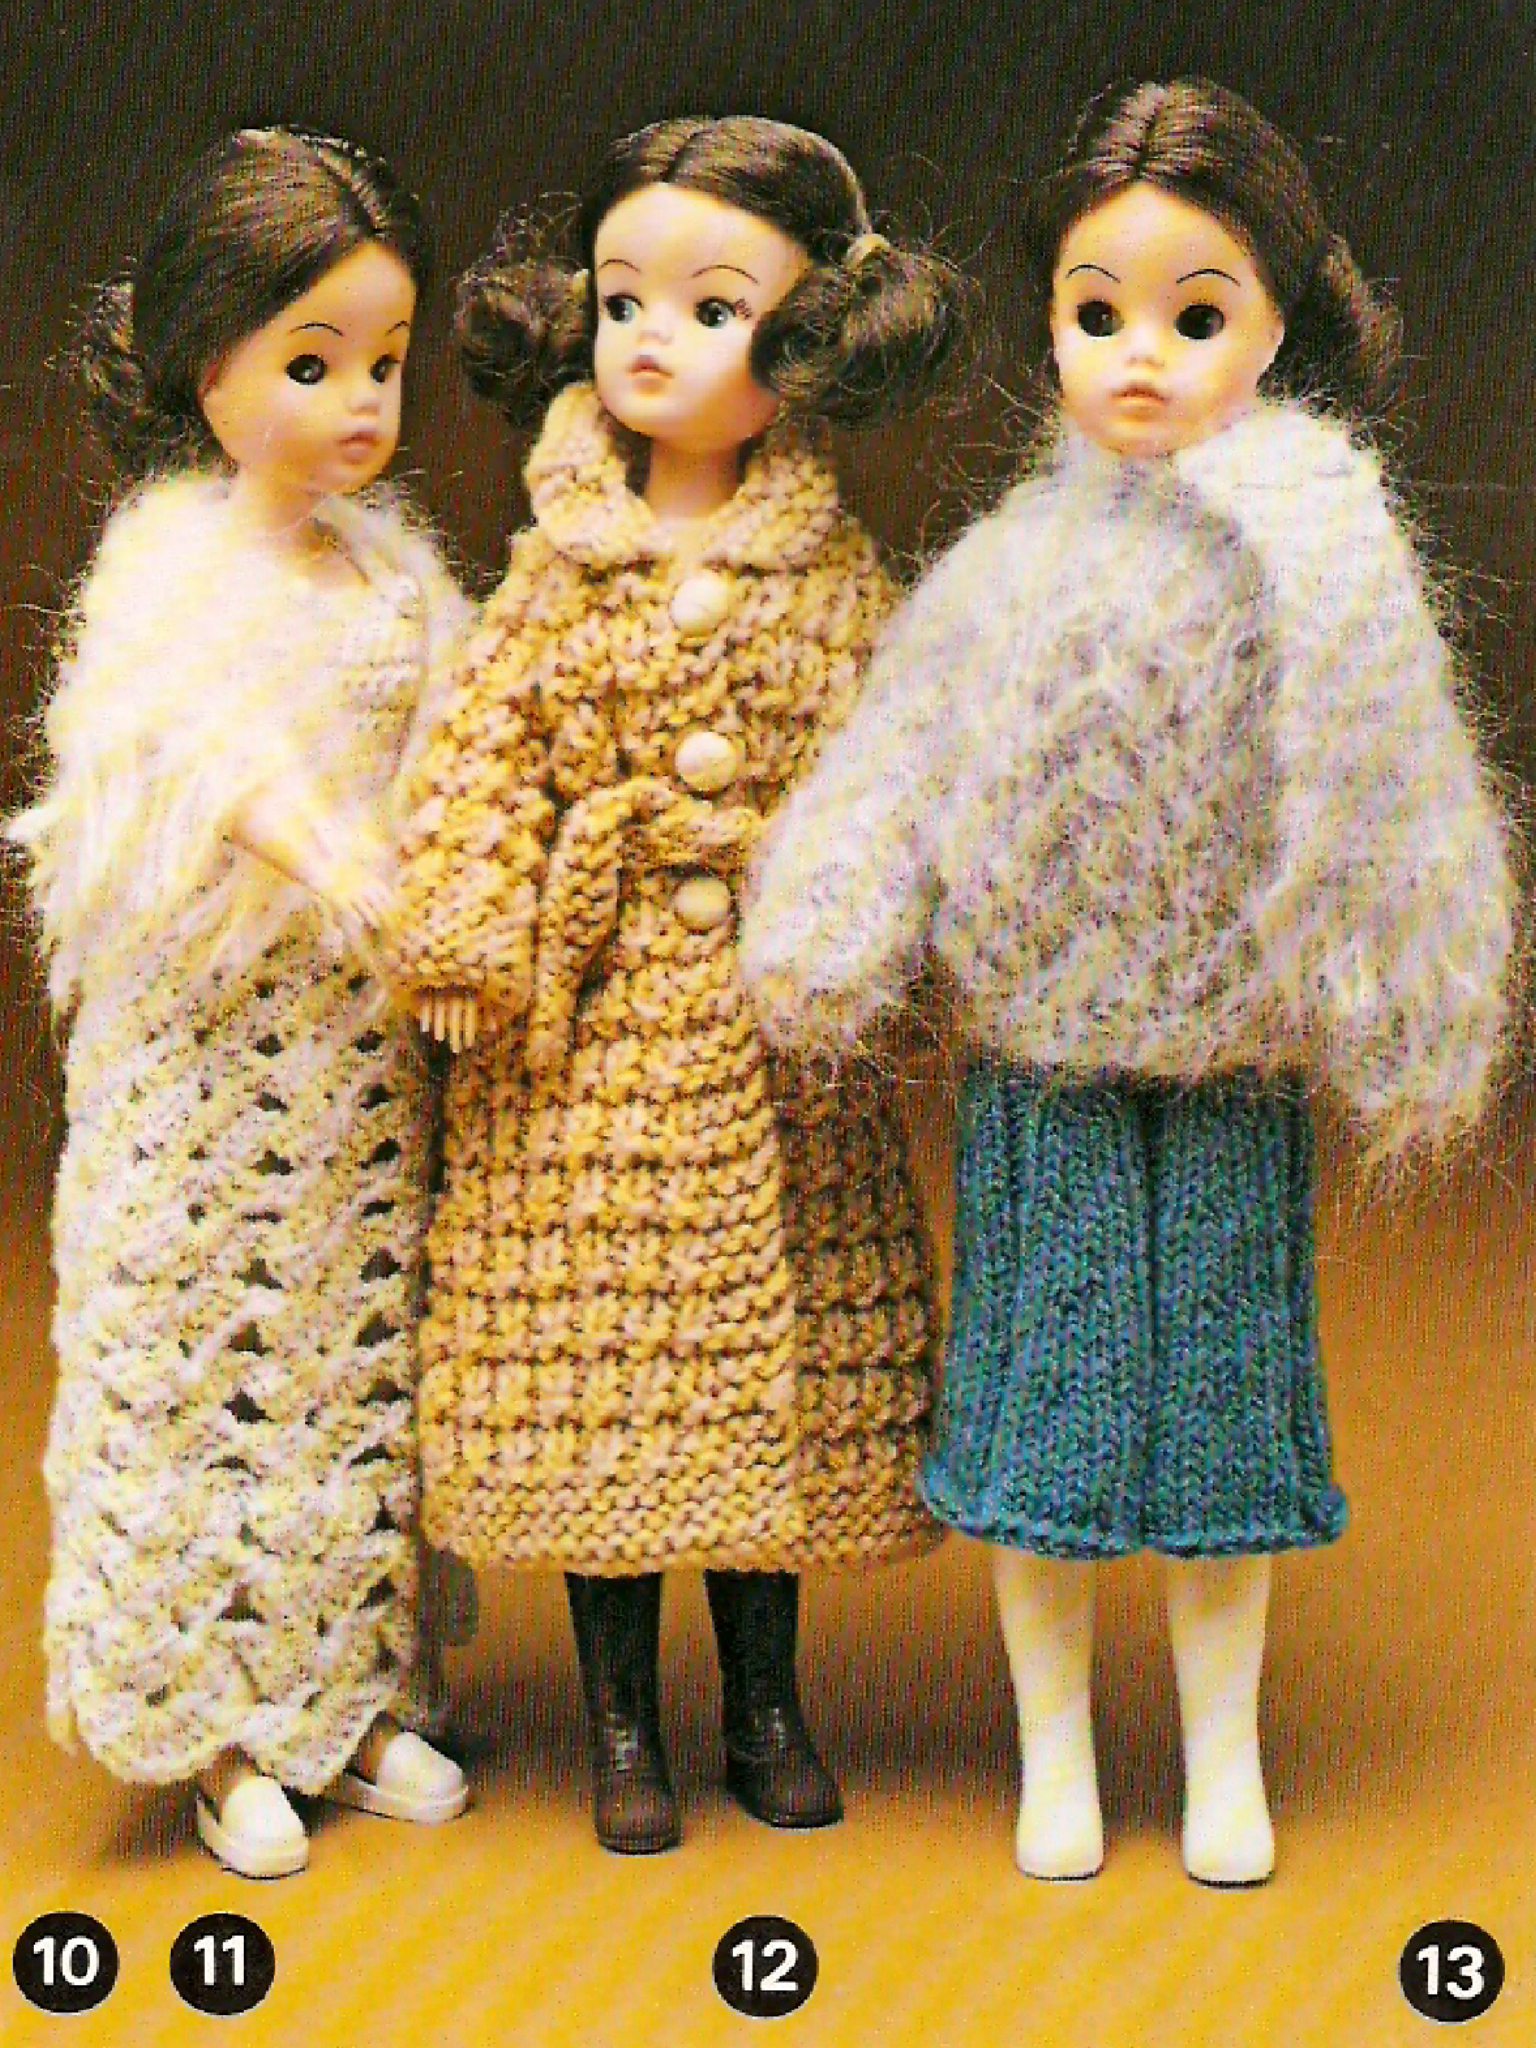 Pin by Candy on BARBIE:Knitting patterns two | Pinterest | Barbie ...